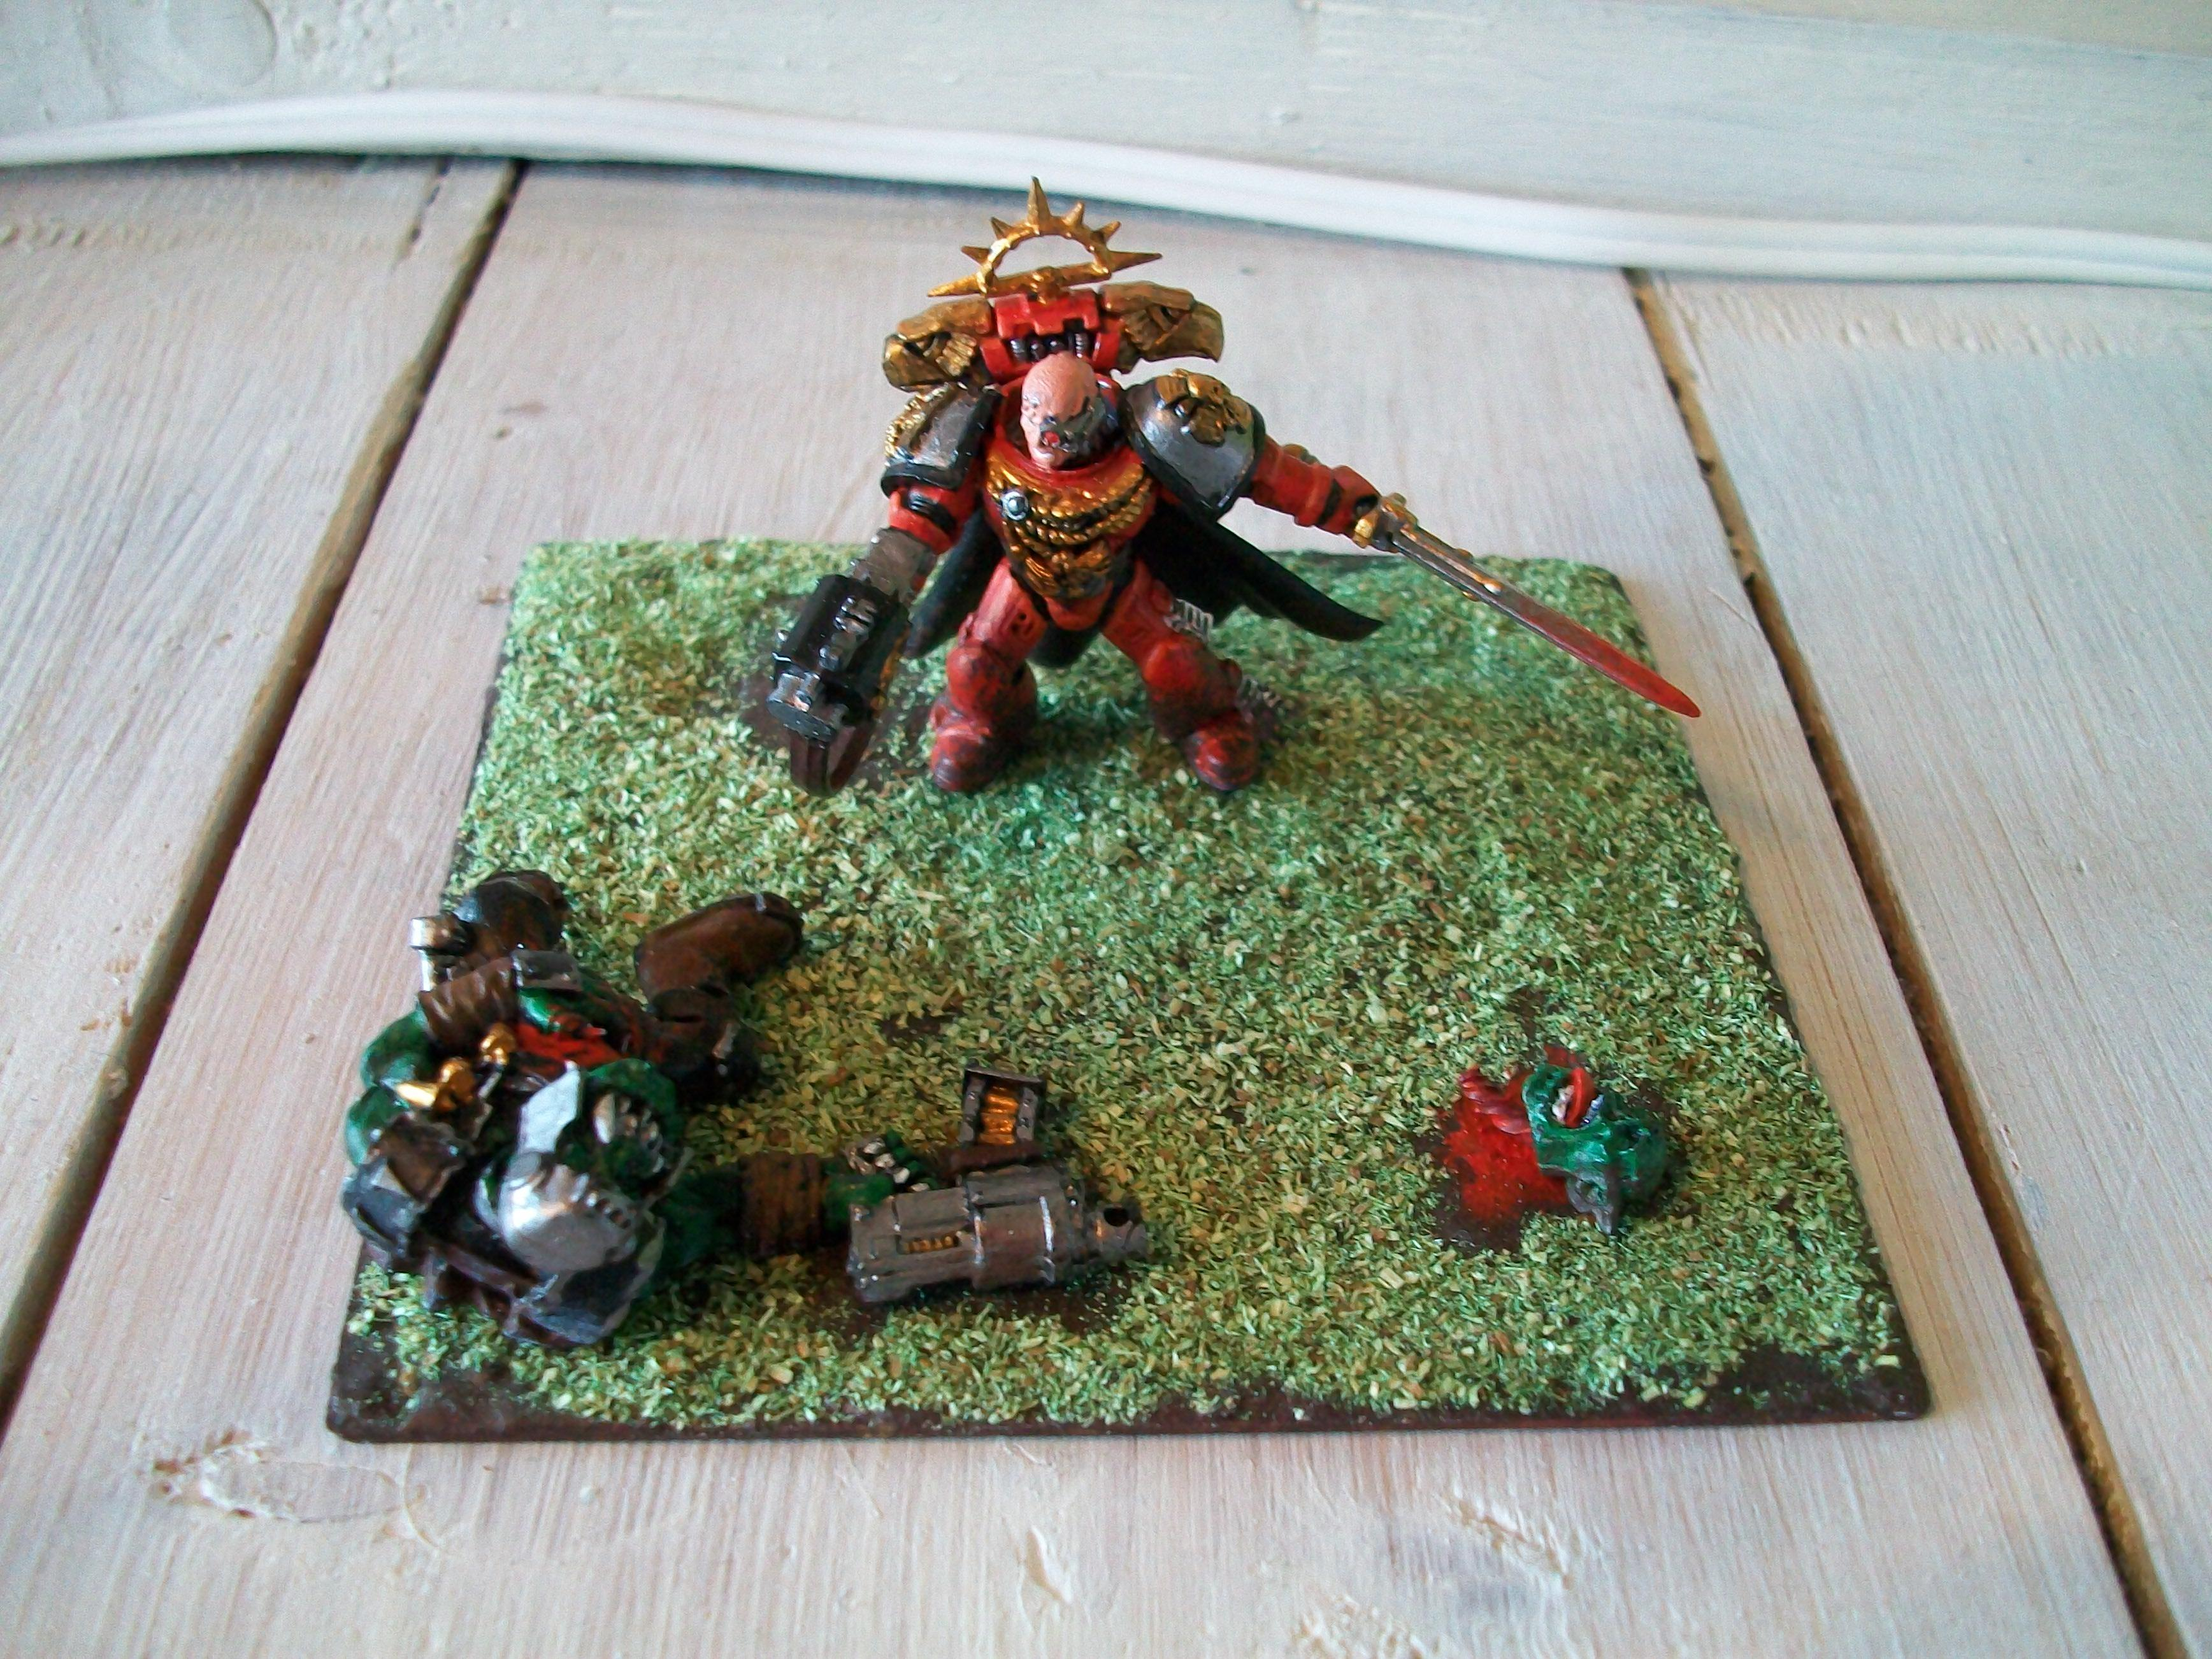 Blood, Commander, Diorama, Dying, Orks, Space, Space Marines, Warhammer 40,000